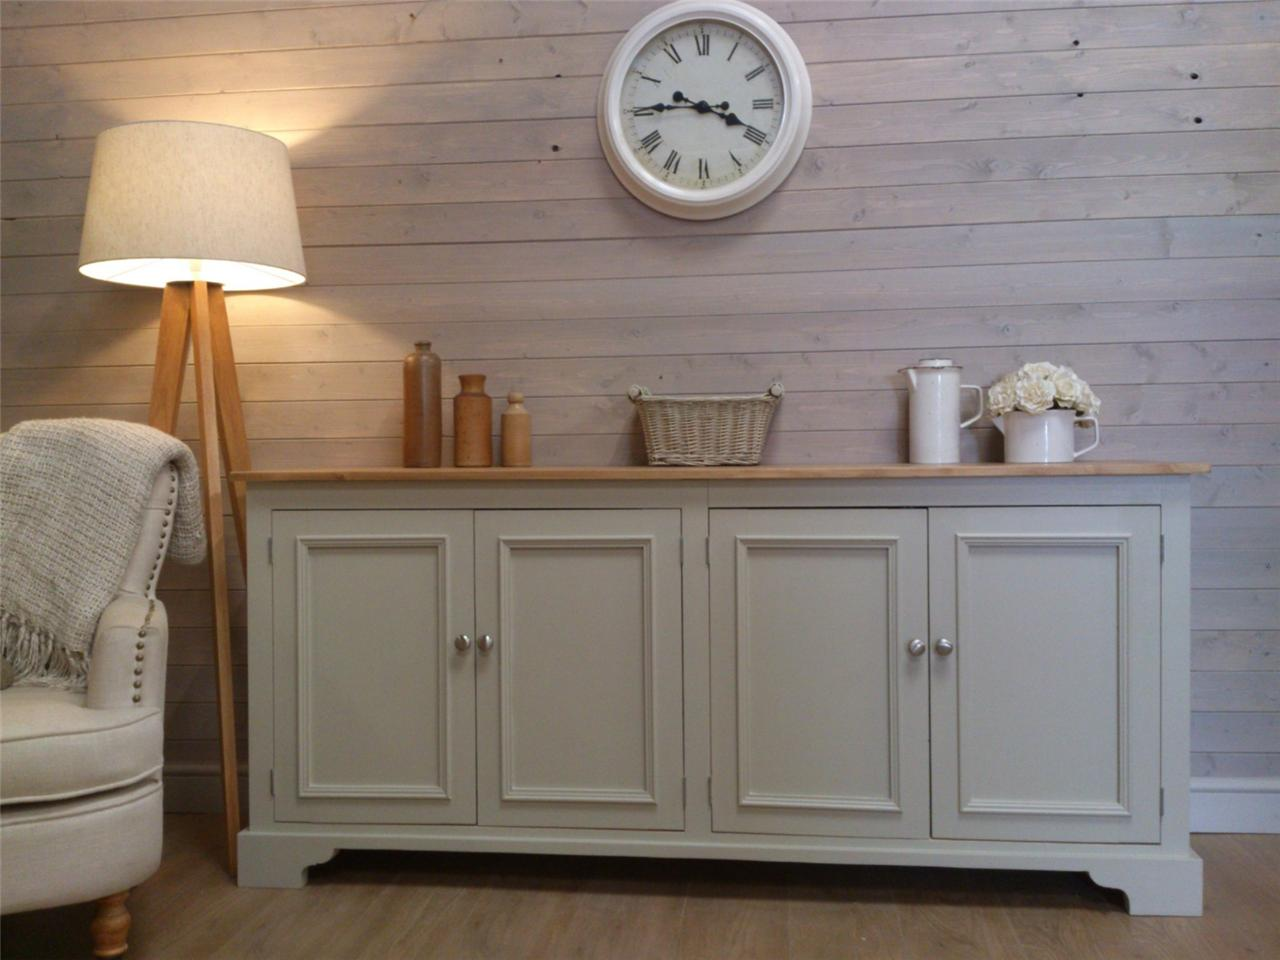 New huge solid pine sideboard kitchen unit shabby chic for Painted buffet sideboard